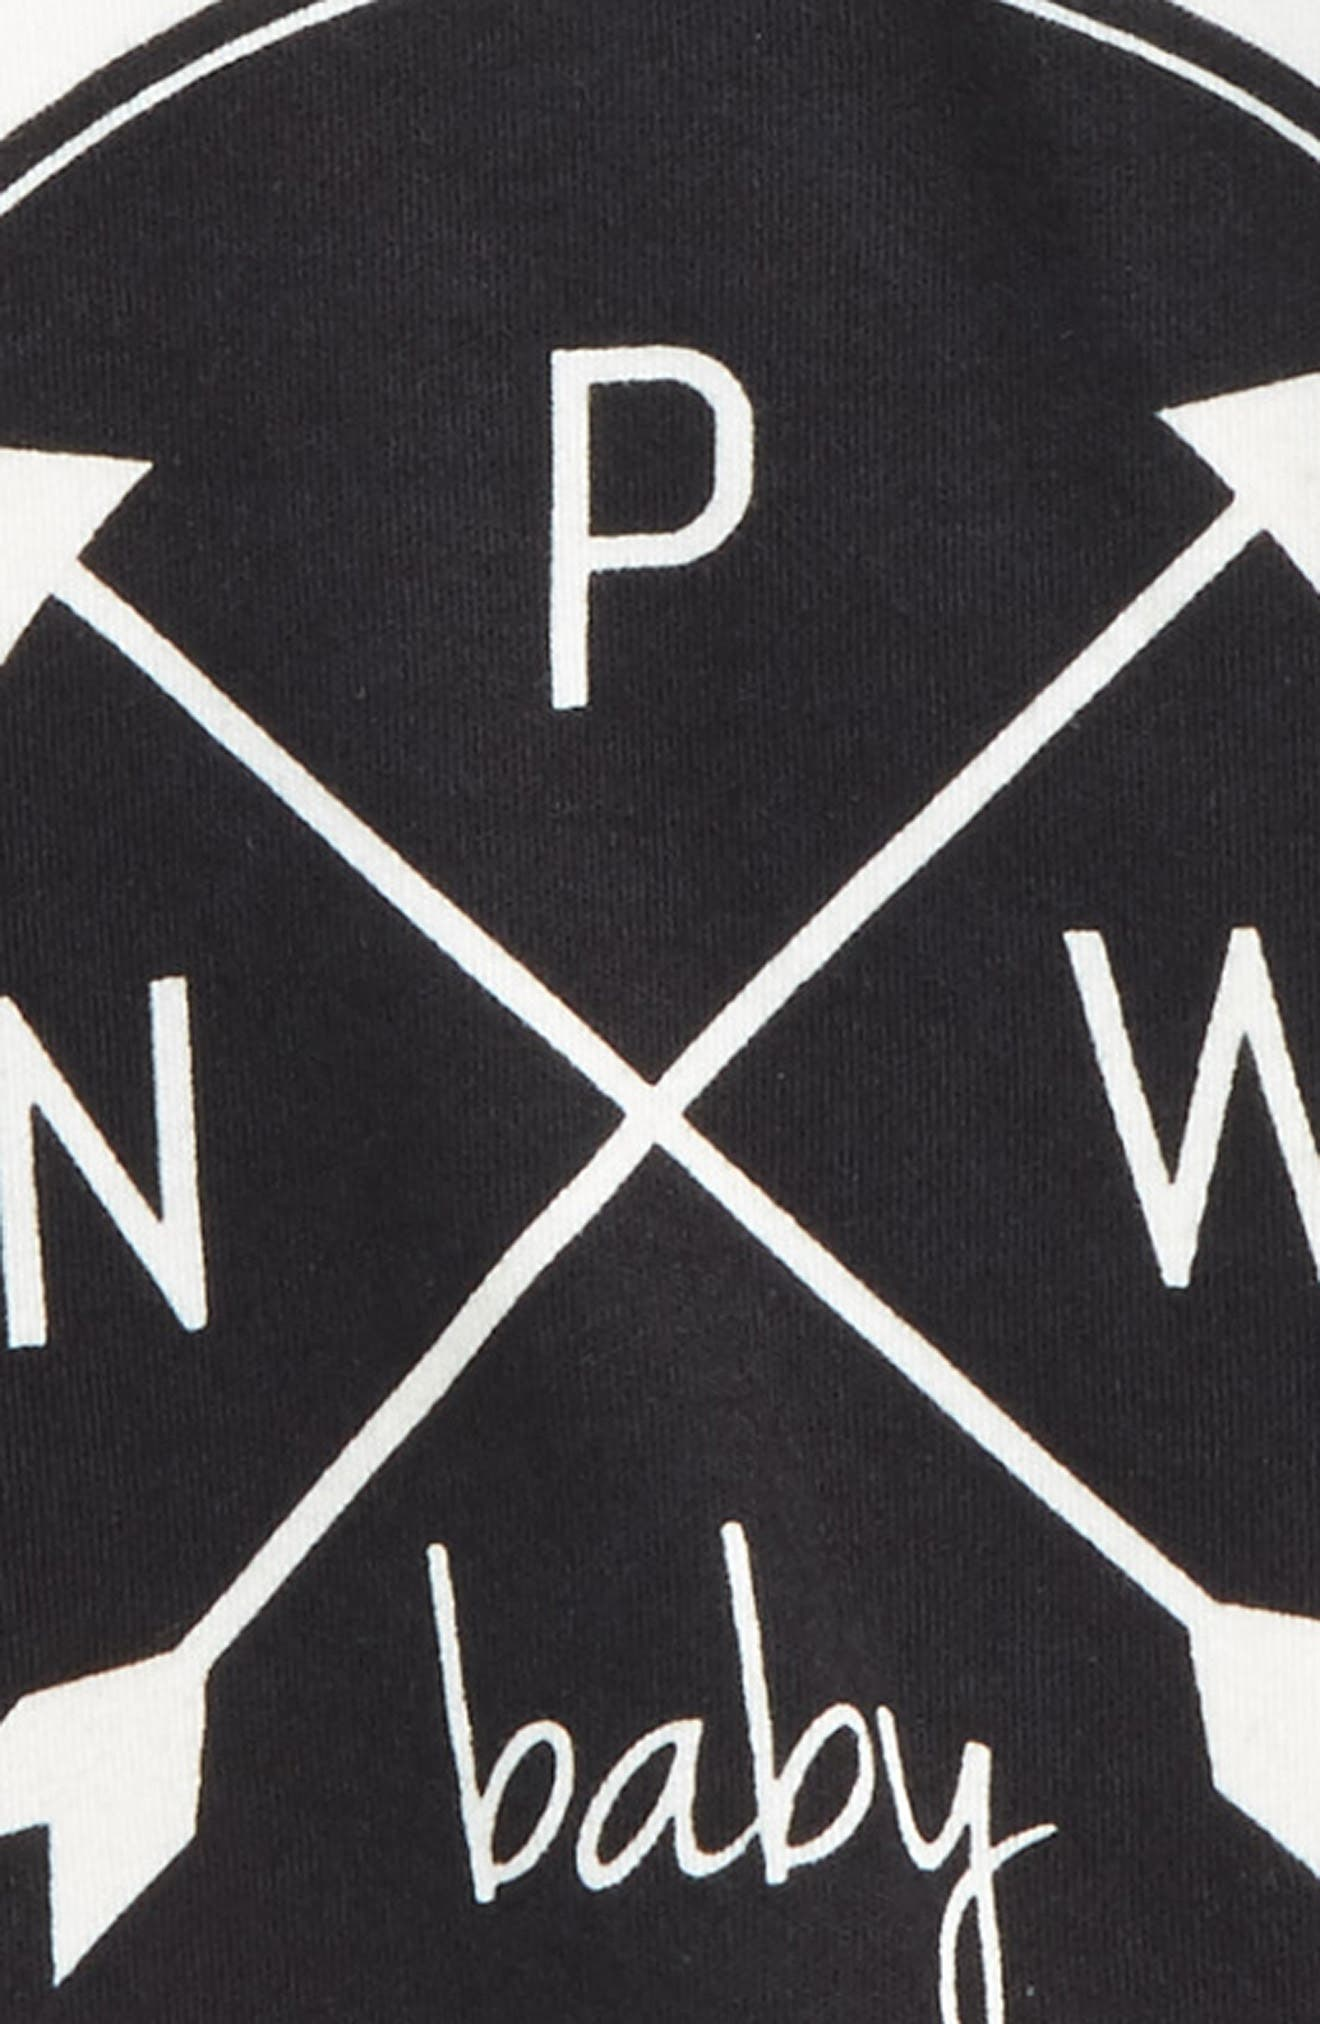 PNW Logo Organic Cotton T-Shirt,                             Alternate thumbnail 2, color,                             Black/ Offwhite